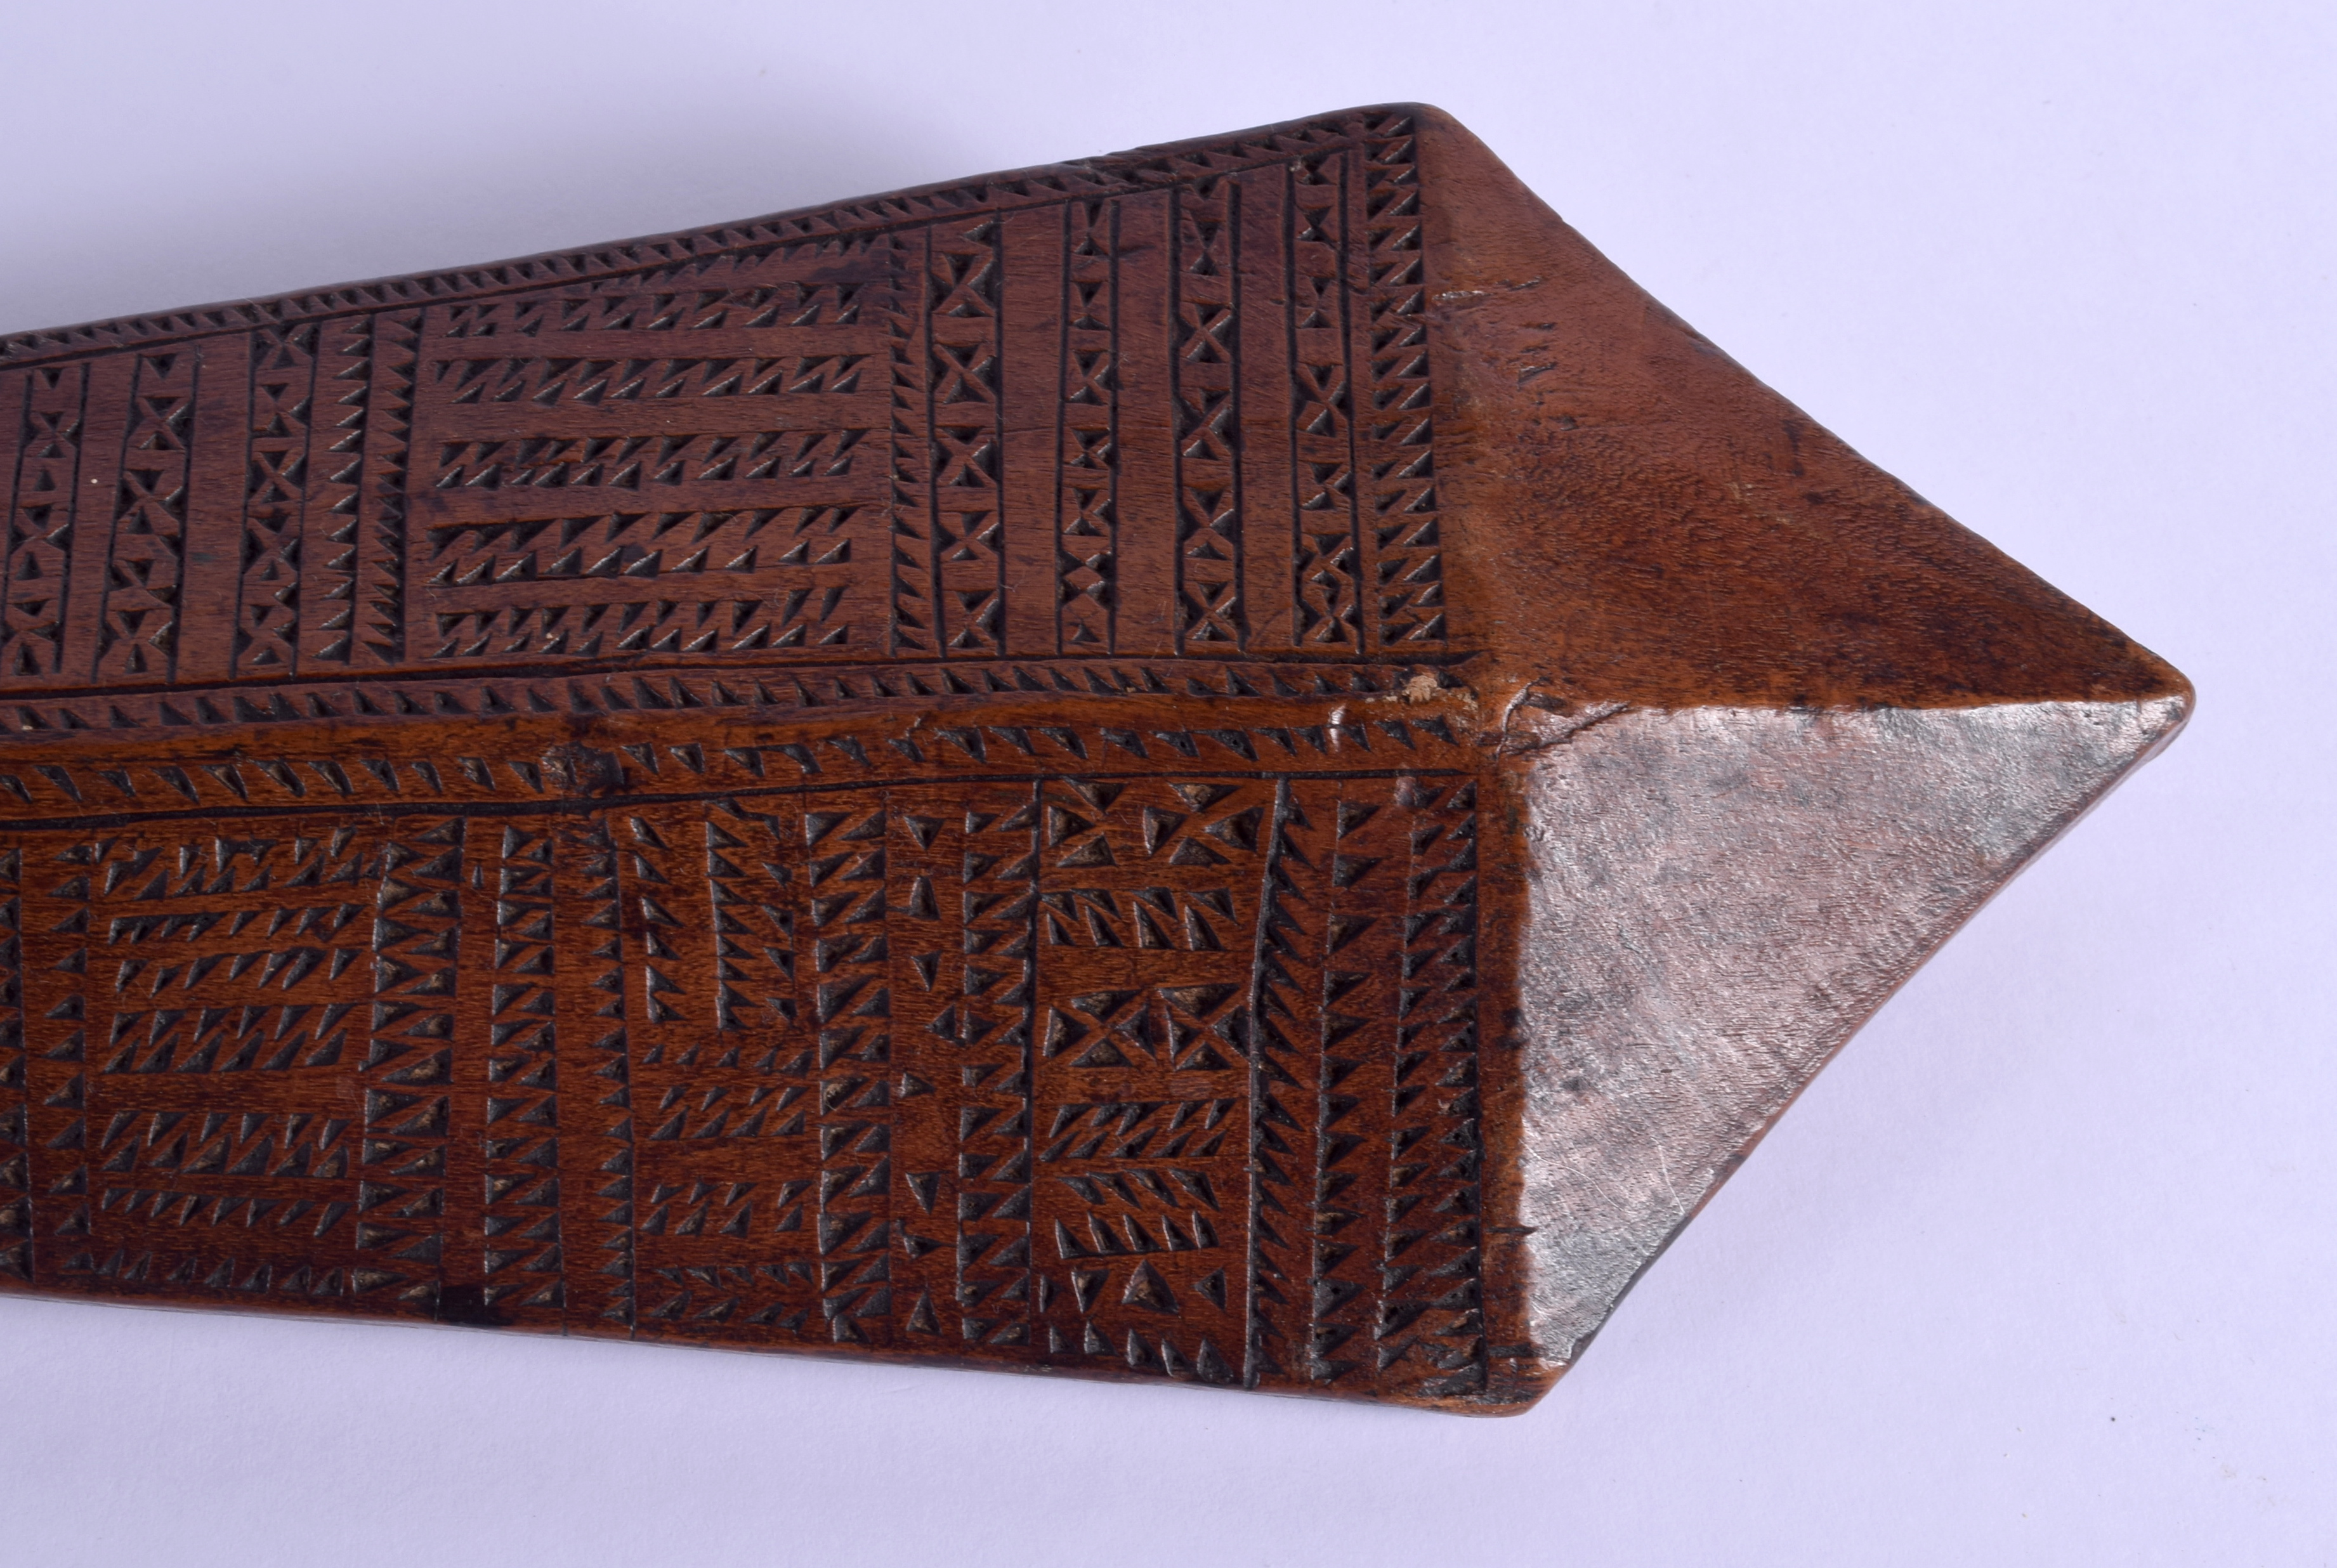 A 19TH CENTURY TONGAN SAMOAN CARVED TRIBAL CLUB decorated with geometric motifs. 68 cm long. - Image 6 of 8